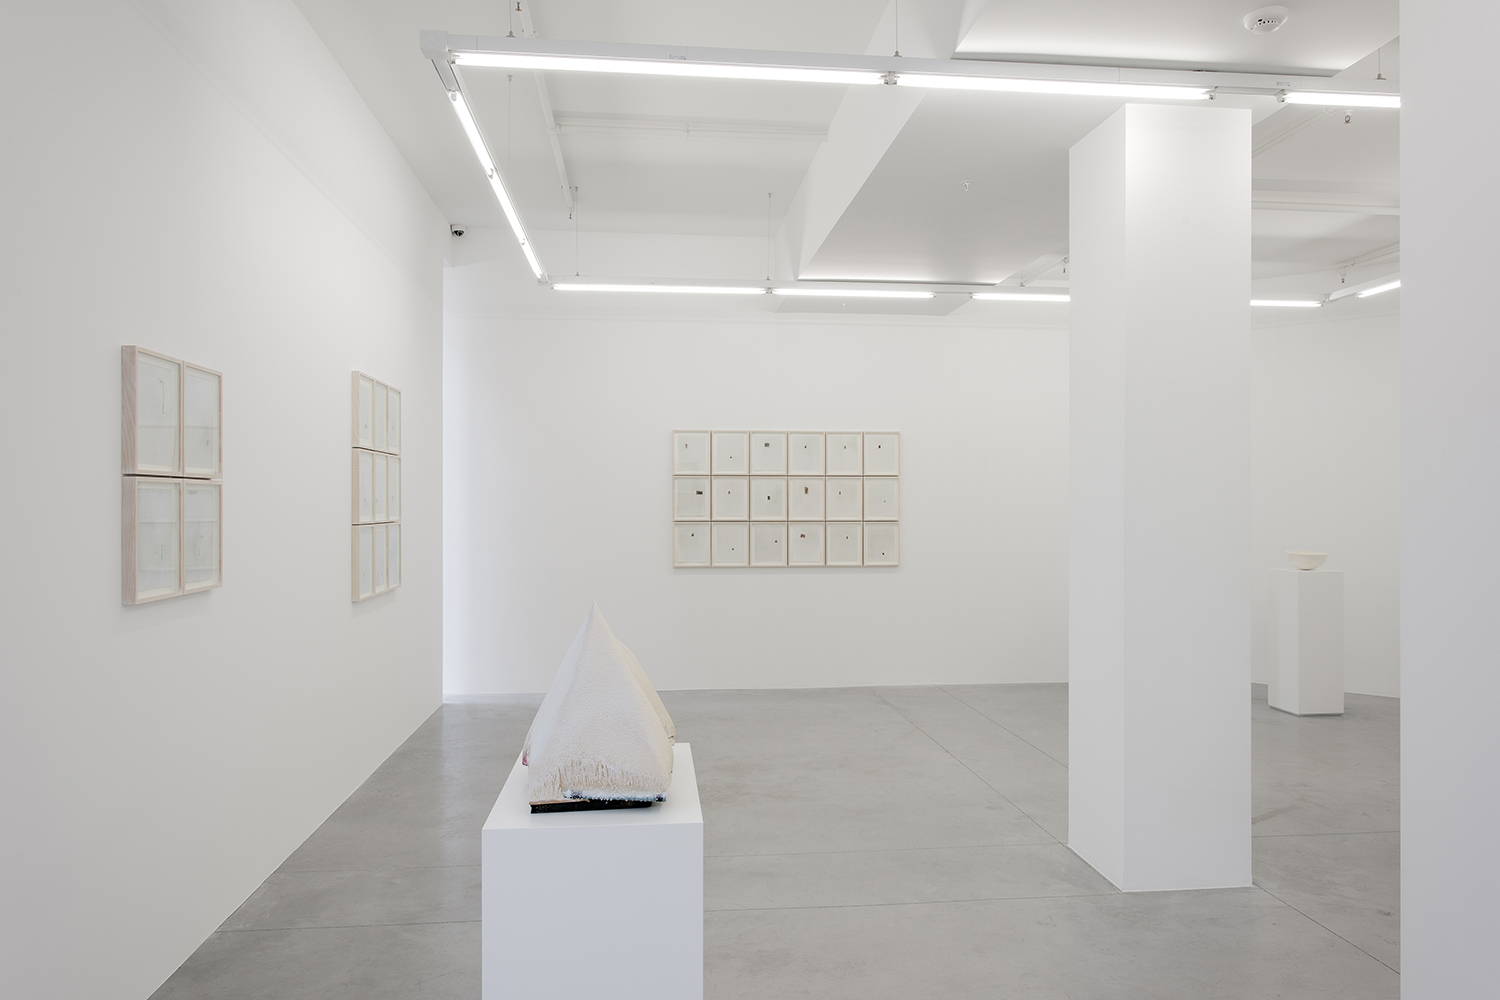 2015 'Vacation' exhibition Hopstreet Gallery image 2 1500px w.jpg